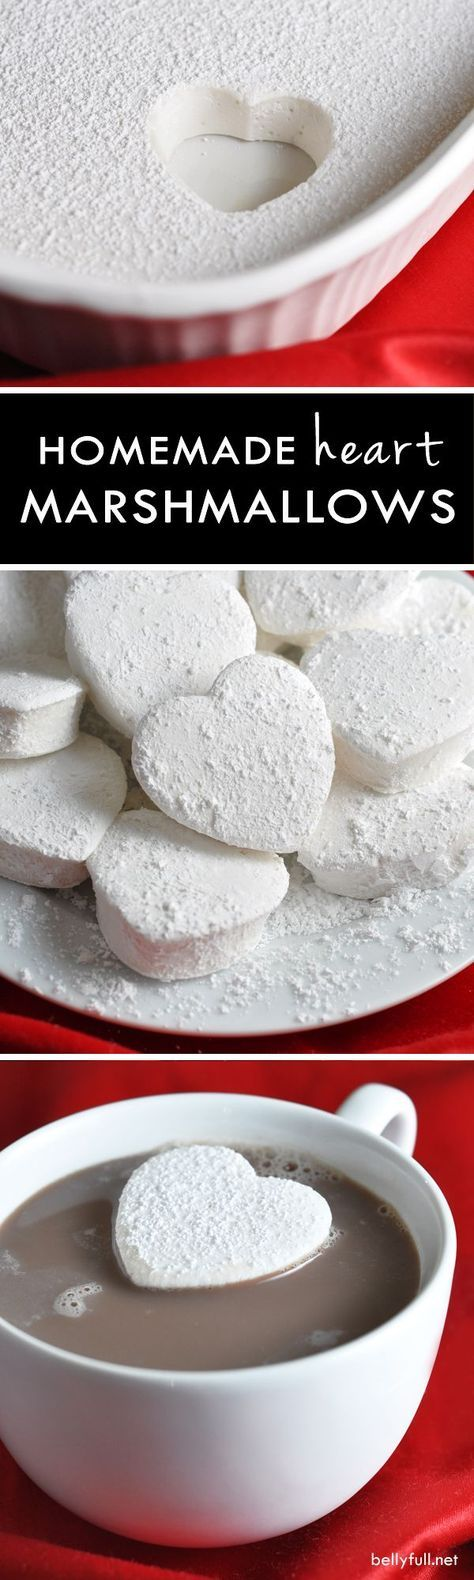 Rich and creamy homemade marshmallows shaped like hearts for Valentine's Day!